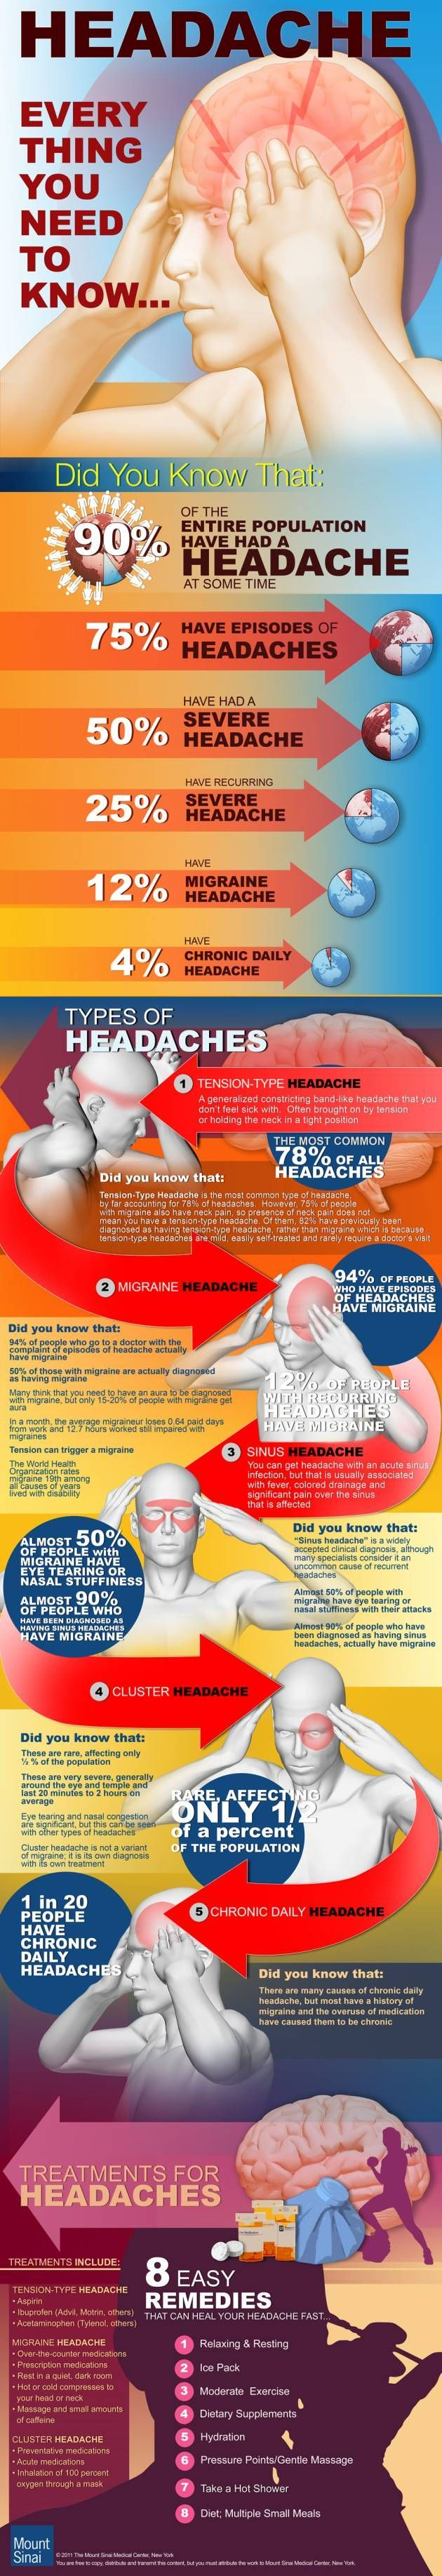 #Headache- It's the general statistics on headaches. Yet, you know your body best. Consult with your family Doctor or seek immediate medical attention if uncertain source/cause of headache.